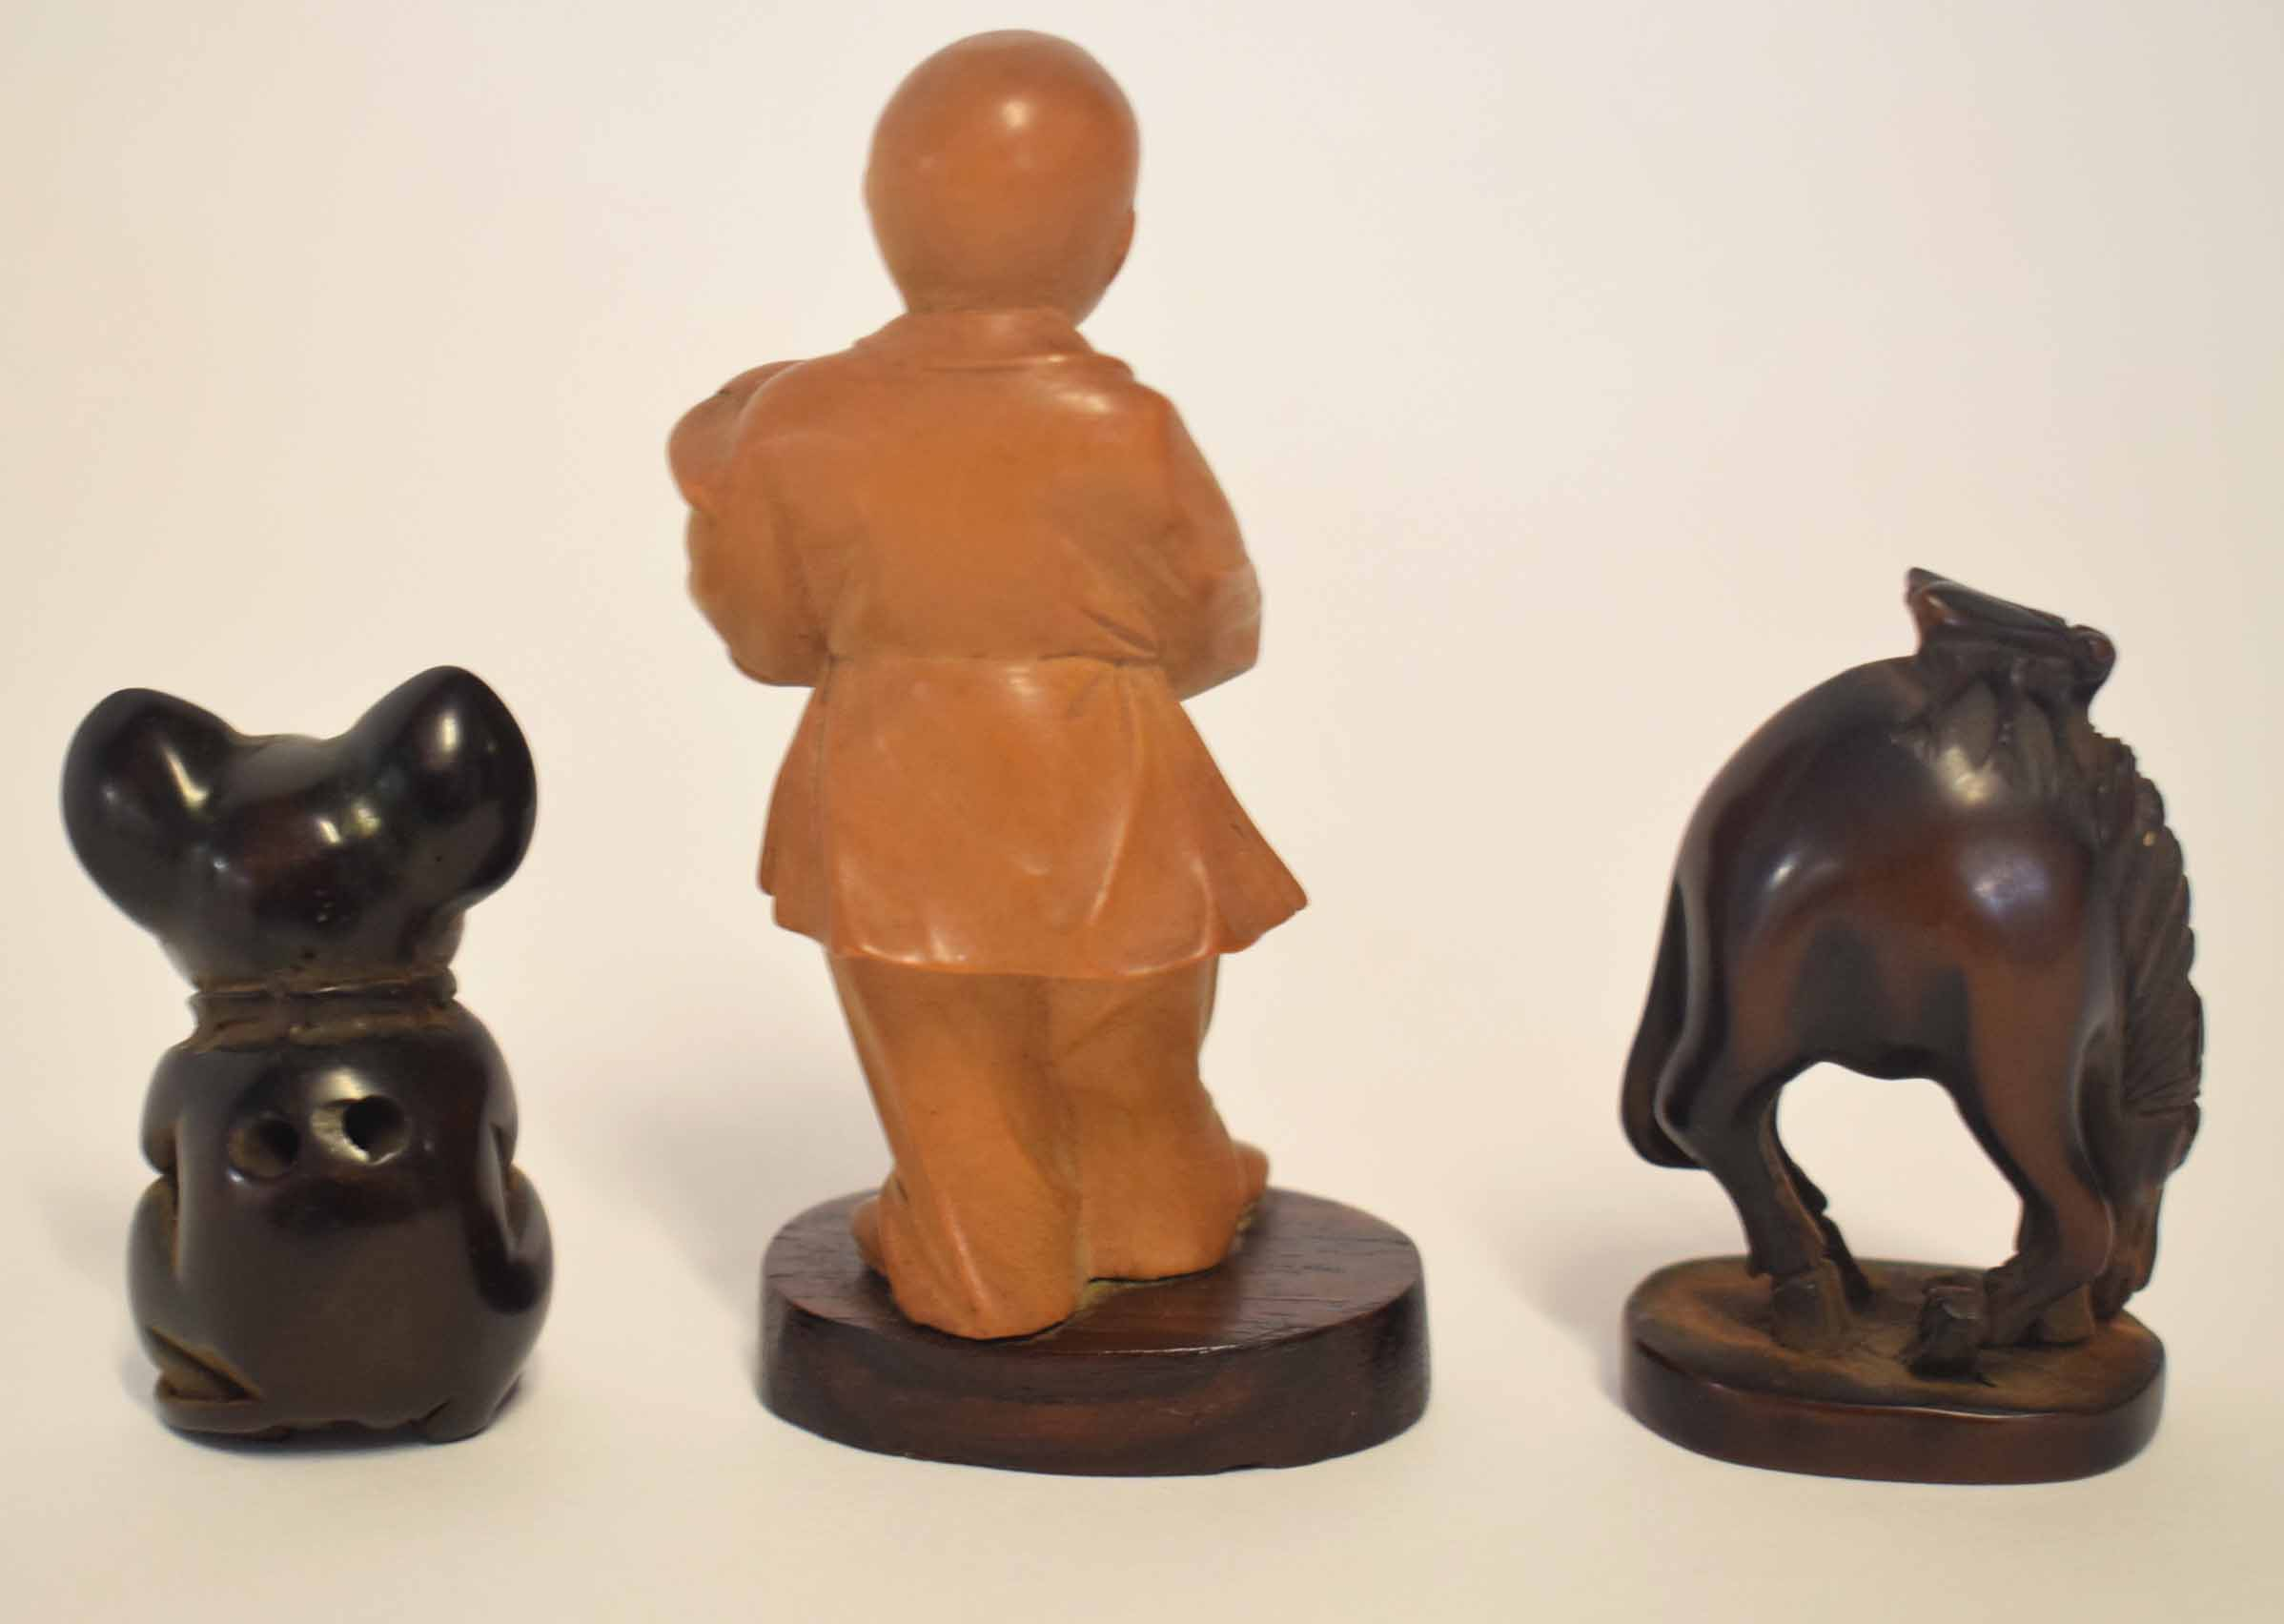 Lot 4 - Carved Oriental figure of a boy together with two further wooden carvings, model of a gazelle and